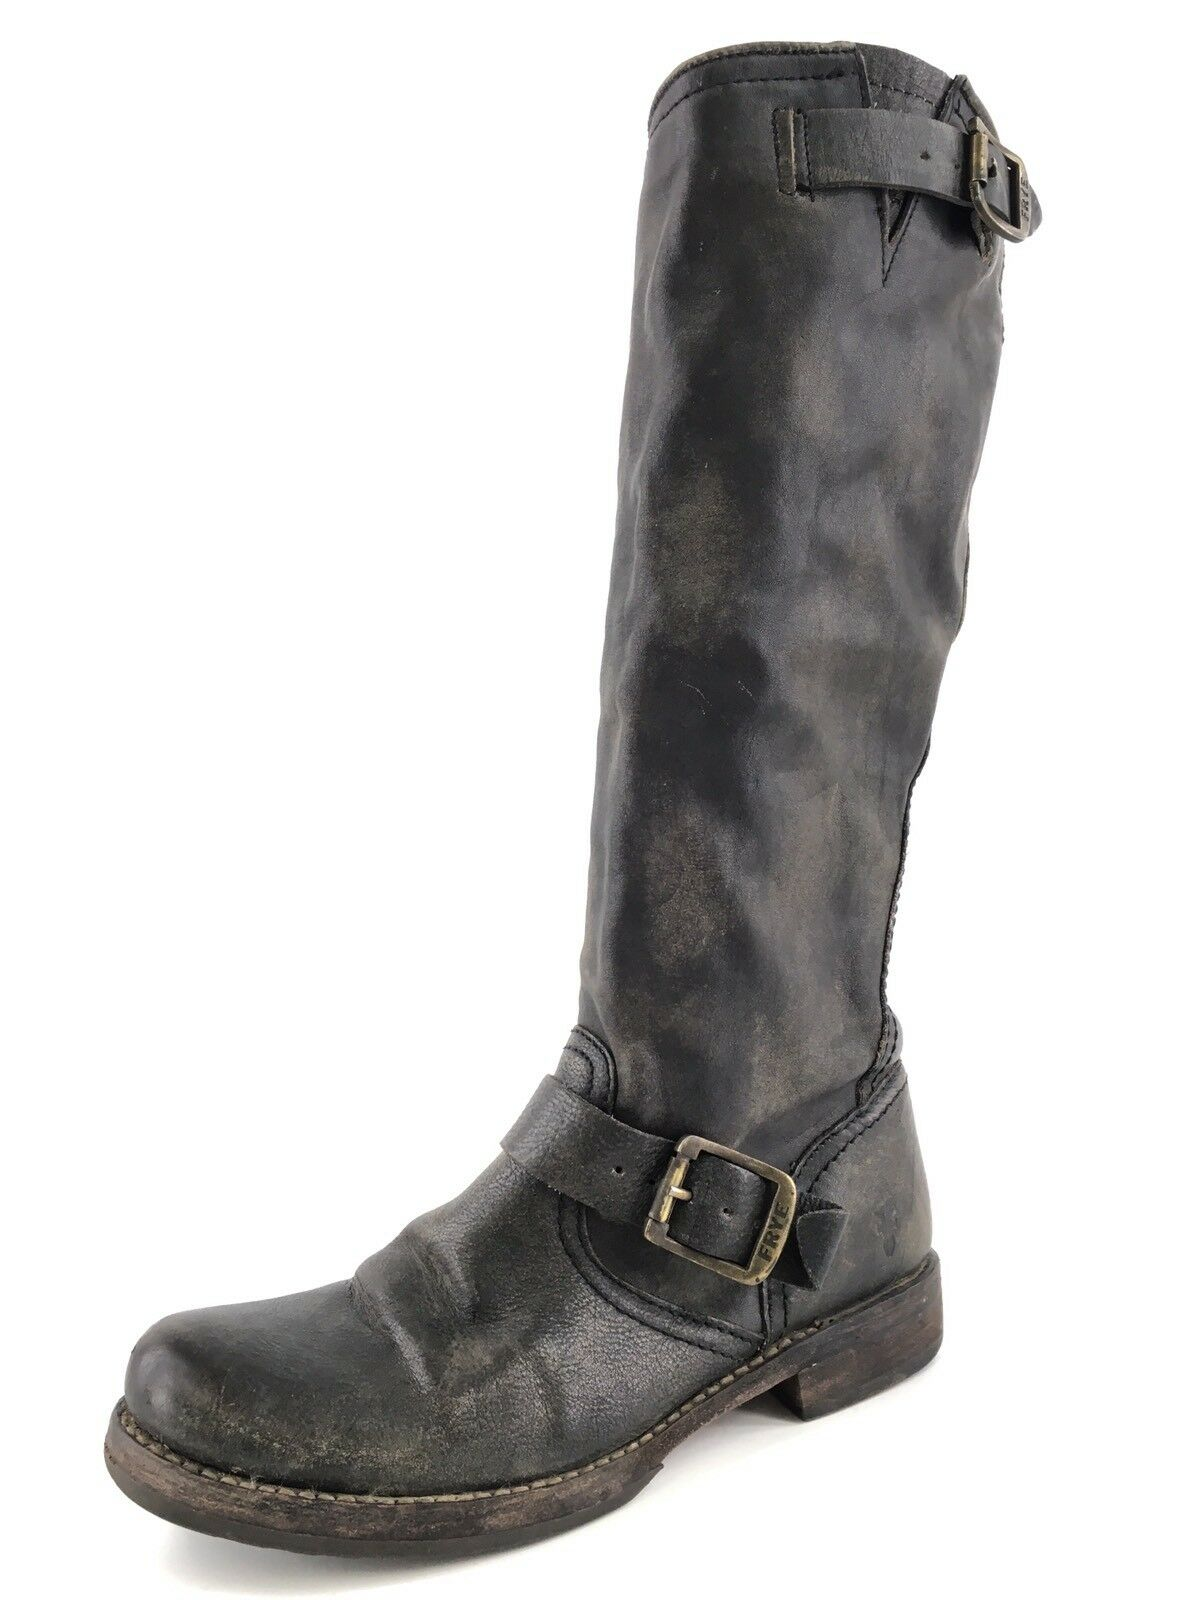 Frye Veronica Slouch Dark Brown Leather Riding Boots Womens Size 6.5 77609 328*